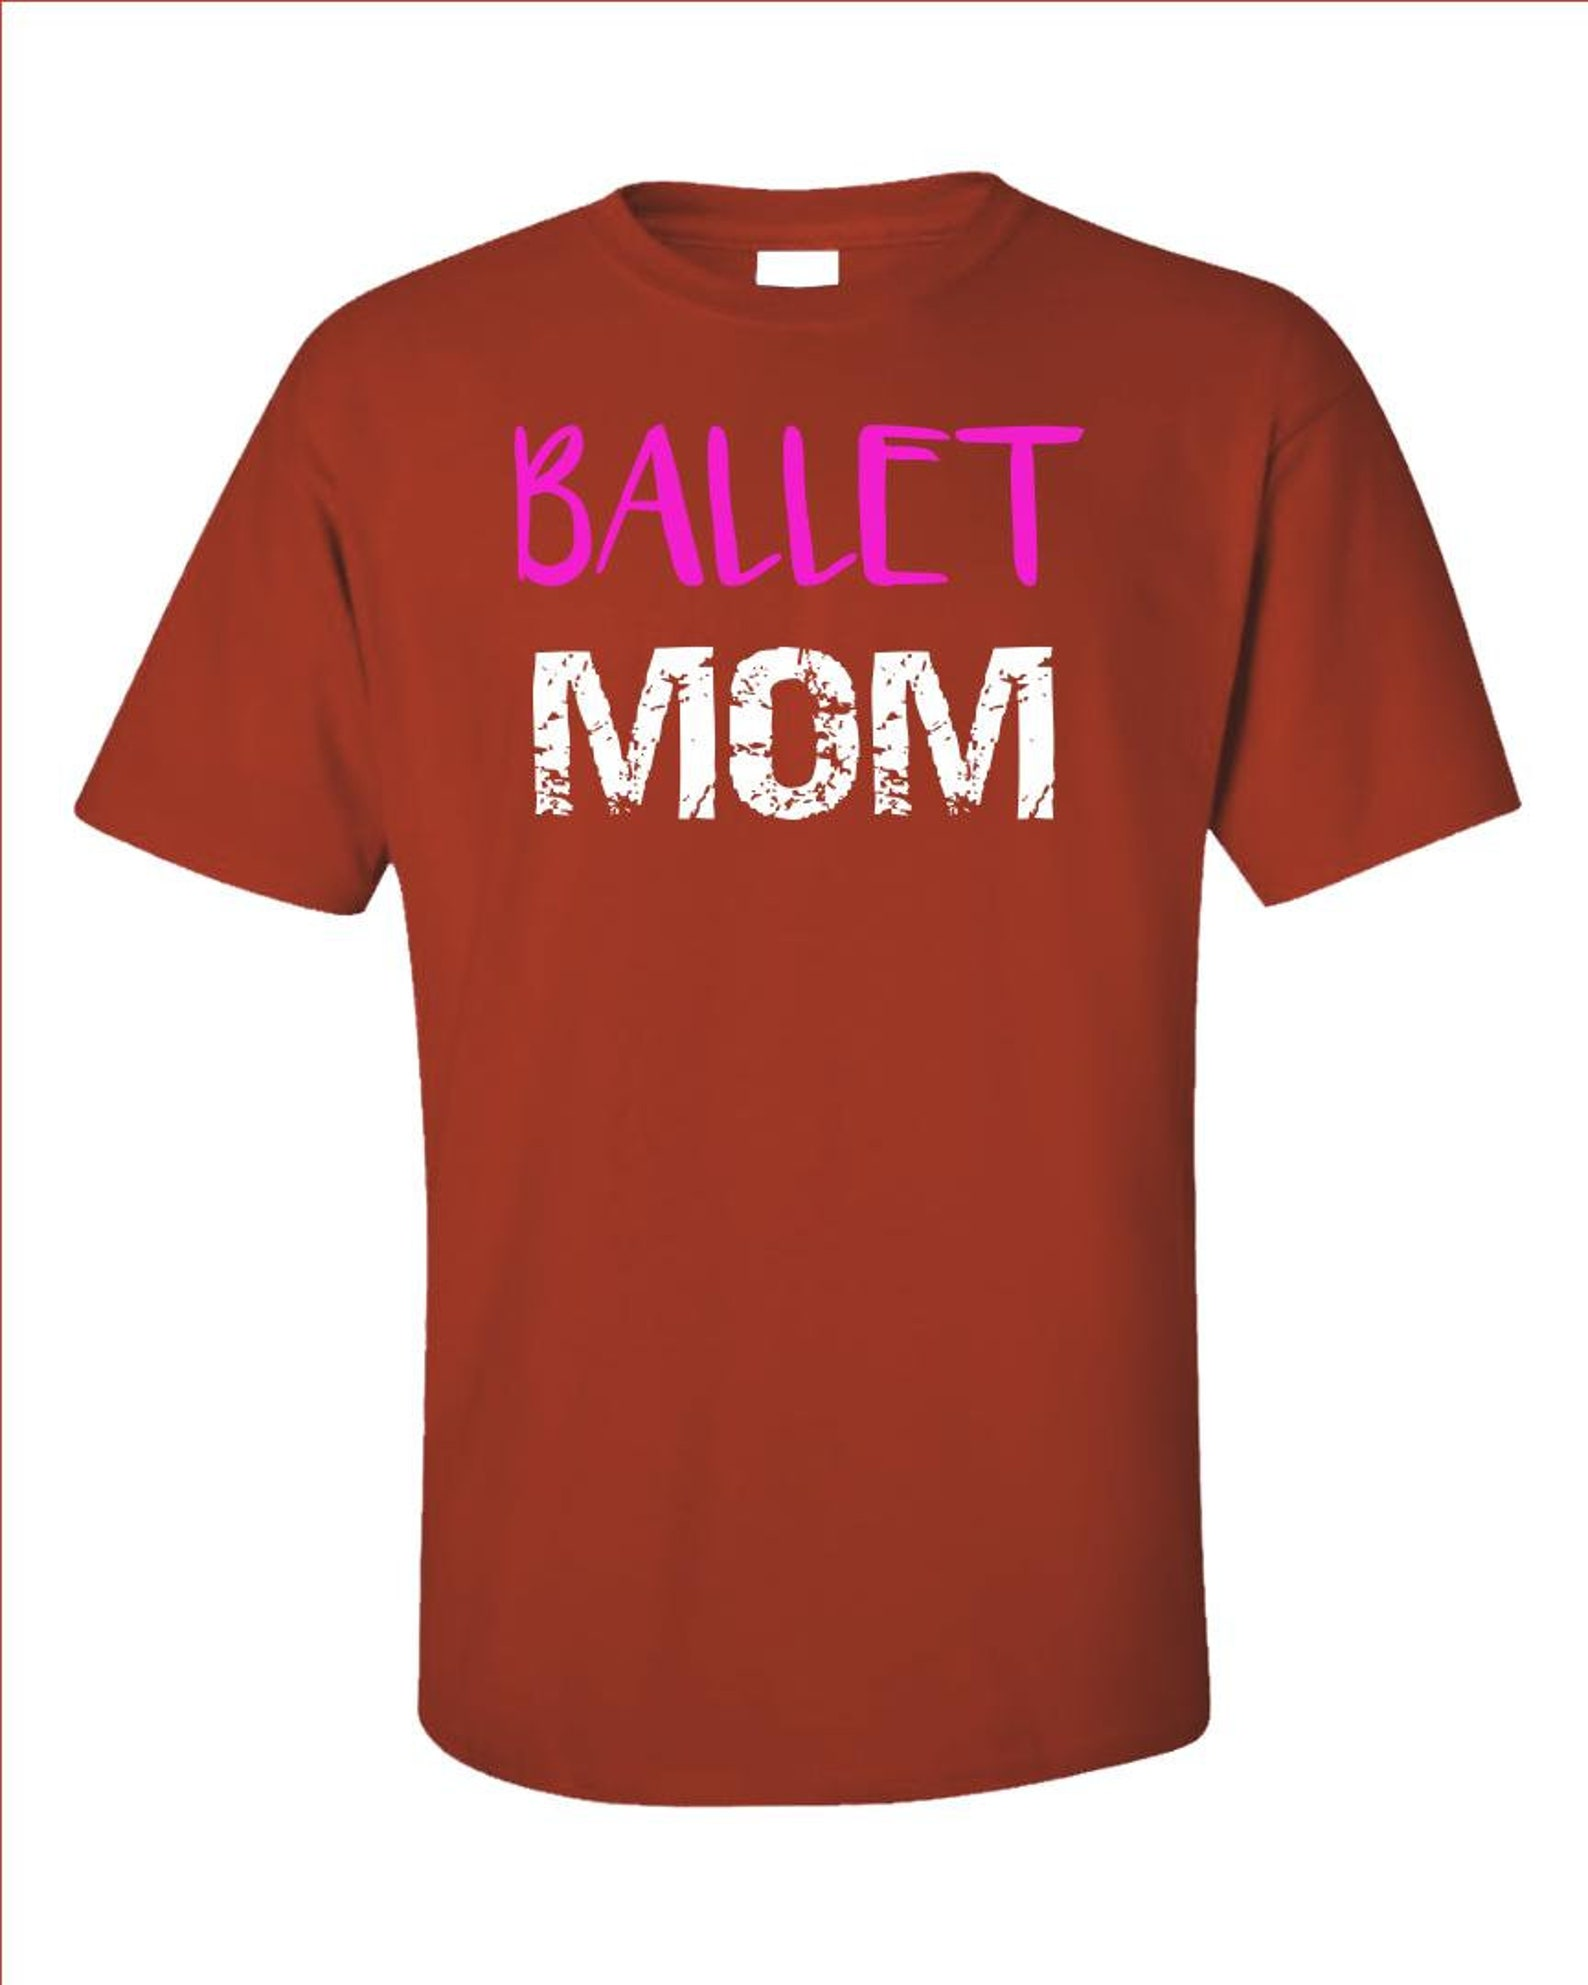 ballet mom ballerina mom dance mom - unisex t-shirt